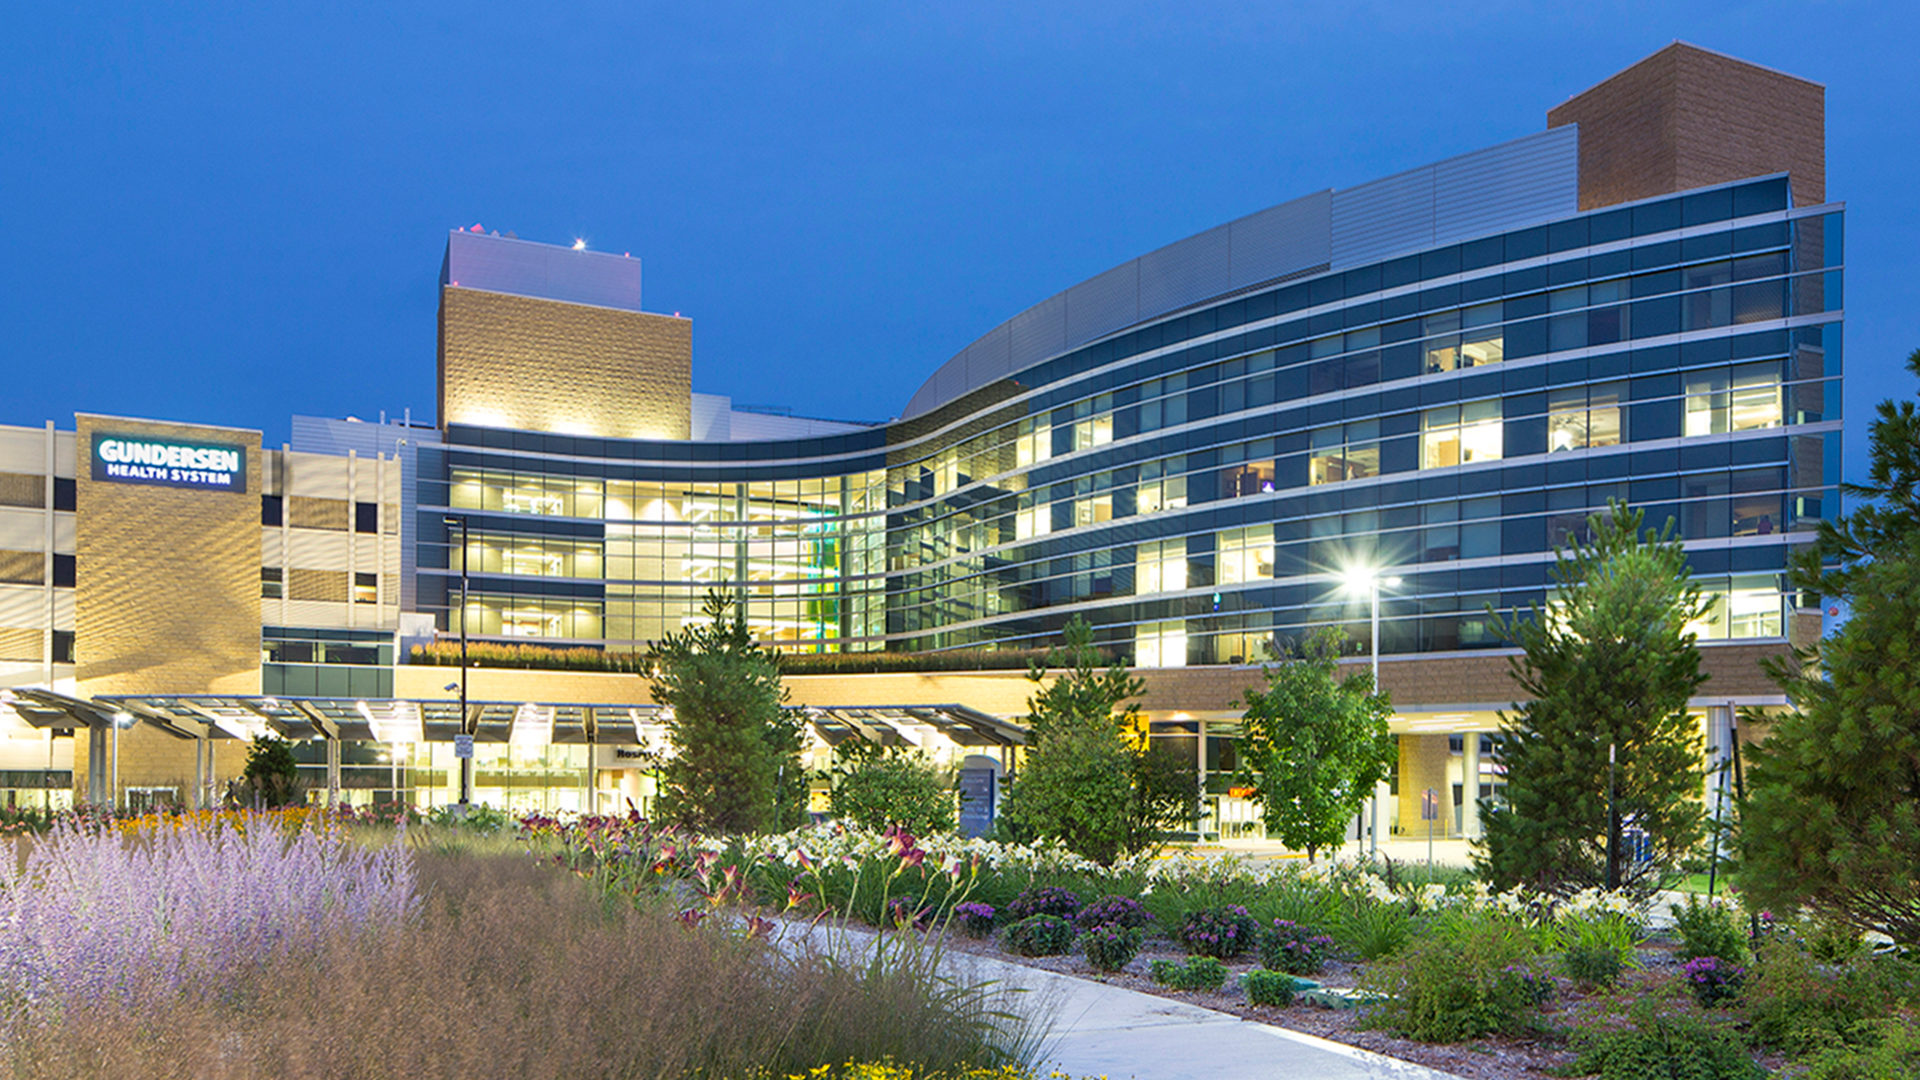 Gundersen-Healthcare-System-Hospital-Evening-Exterior-View-1920x1080